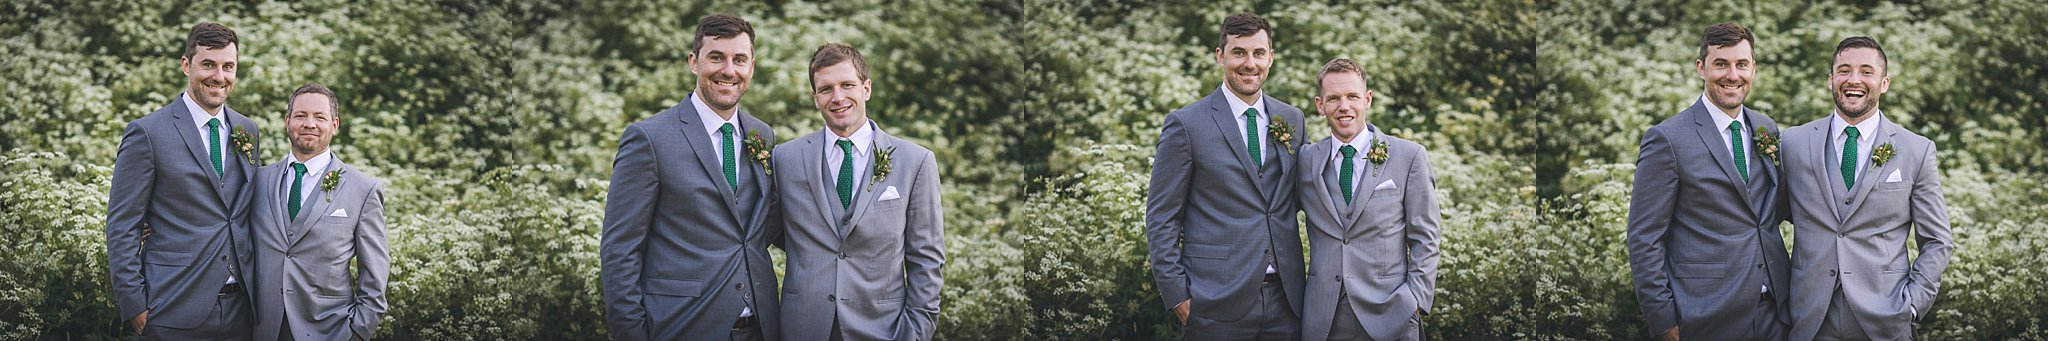 Groom in his custom Joseph Abboud suit during his Newfoundland Wedding photographs